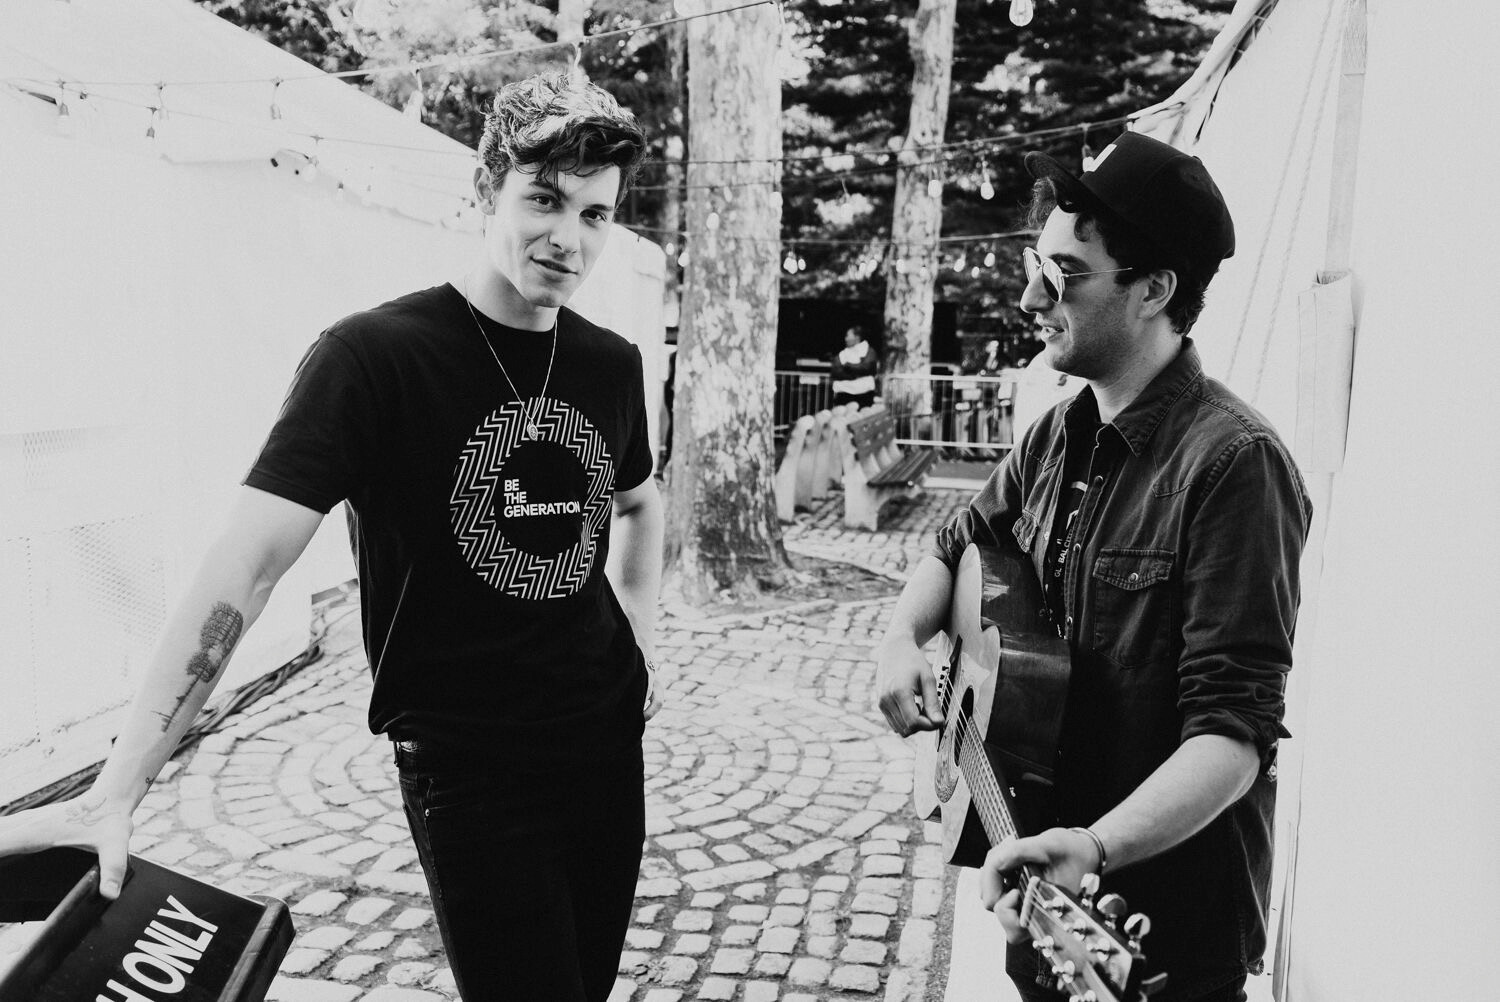 Scott Harris, 34, right, has worked with 20-year-old Shawn Mendes for about five years as the pop star rose to fame.